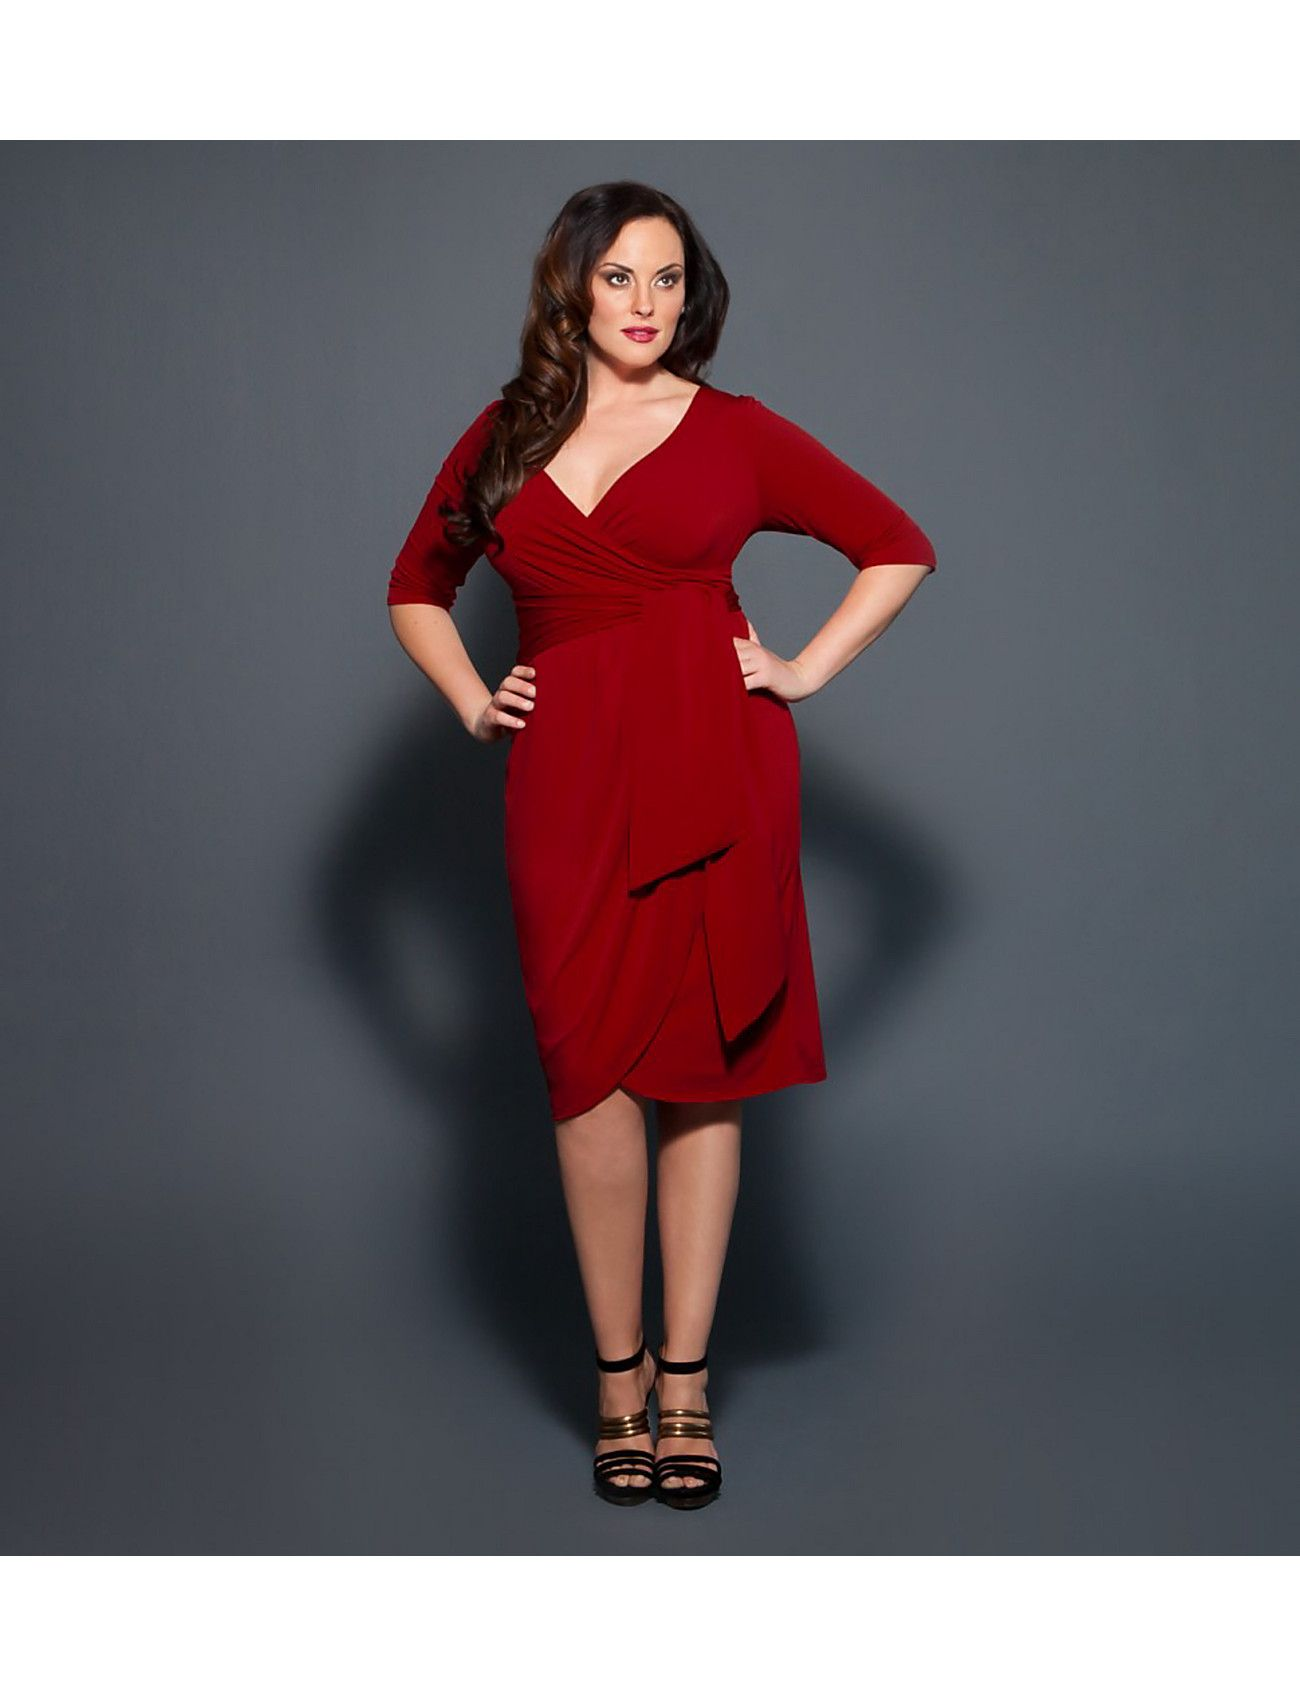 Curvy red dress perfect for the holidays curvy bodies pinterest